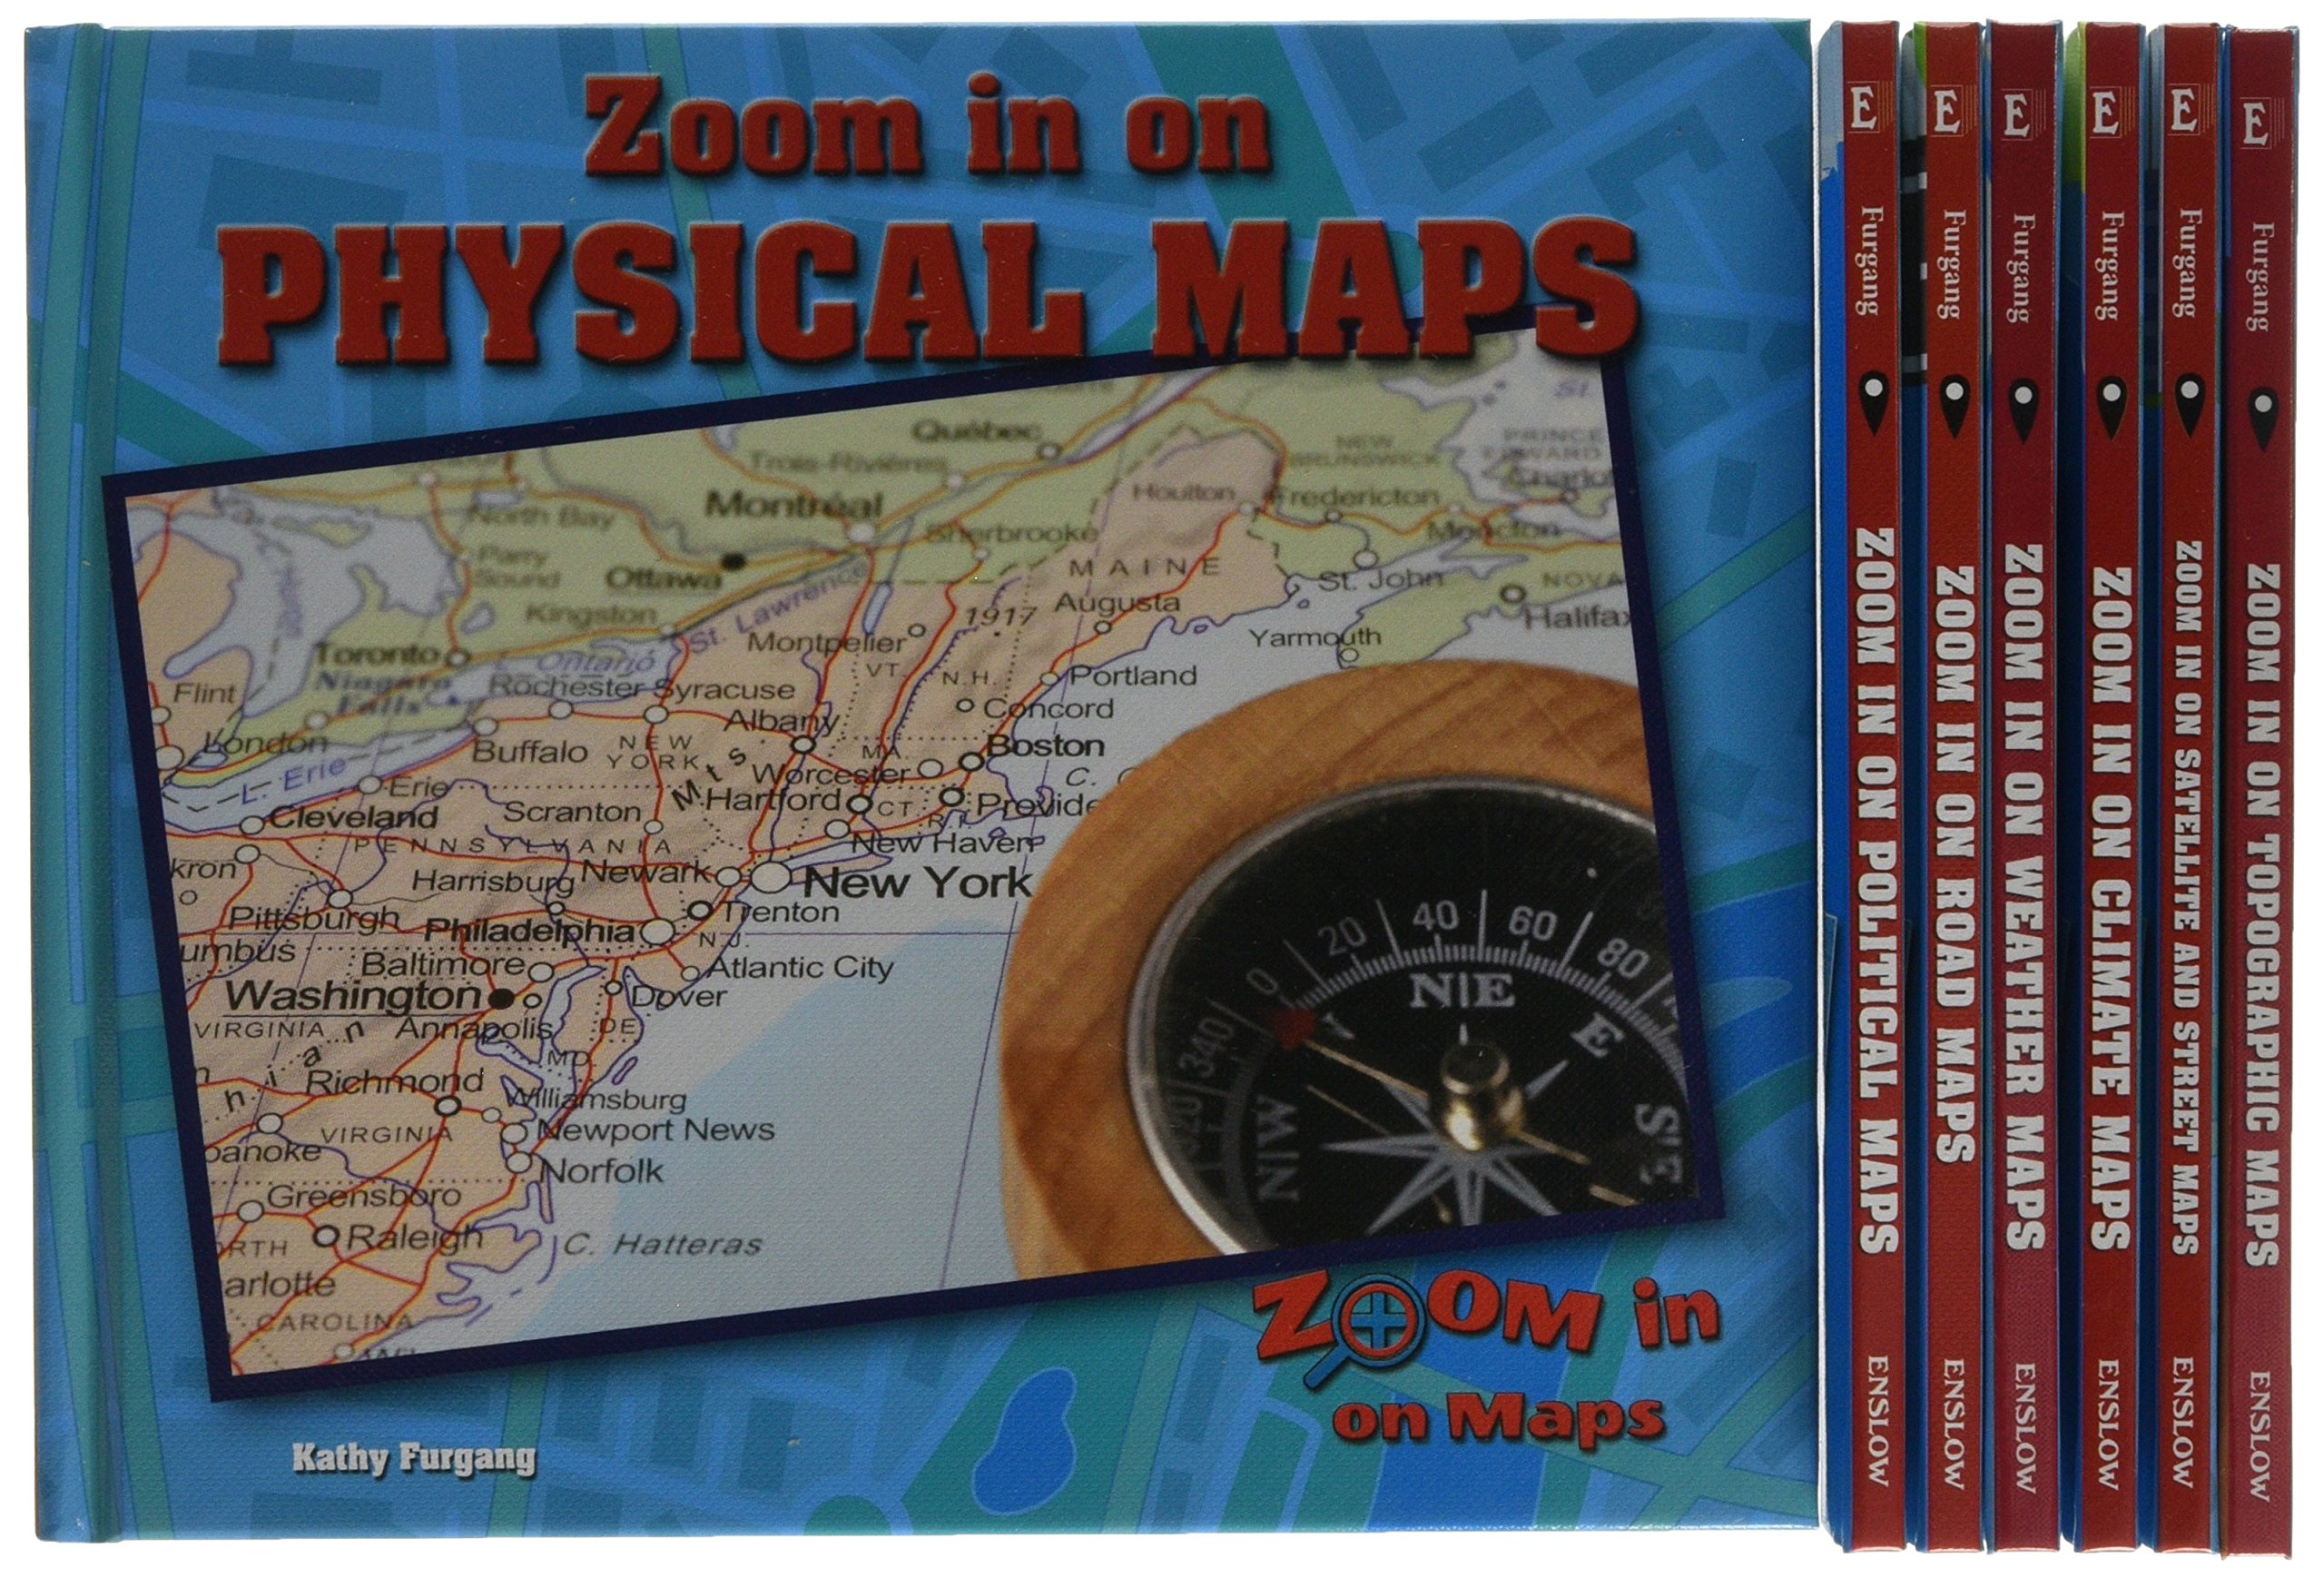 Zoom in on Maps: Kathy Furgang: 9780766092396: Amazon.com: Books Zoom Map Of East Coast Us on zoom map of asia, zoom map of israel, zoom map of middle east,